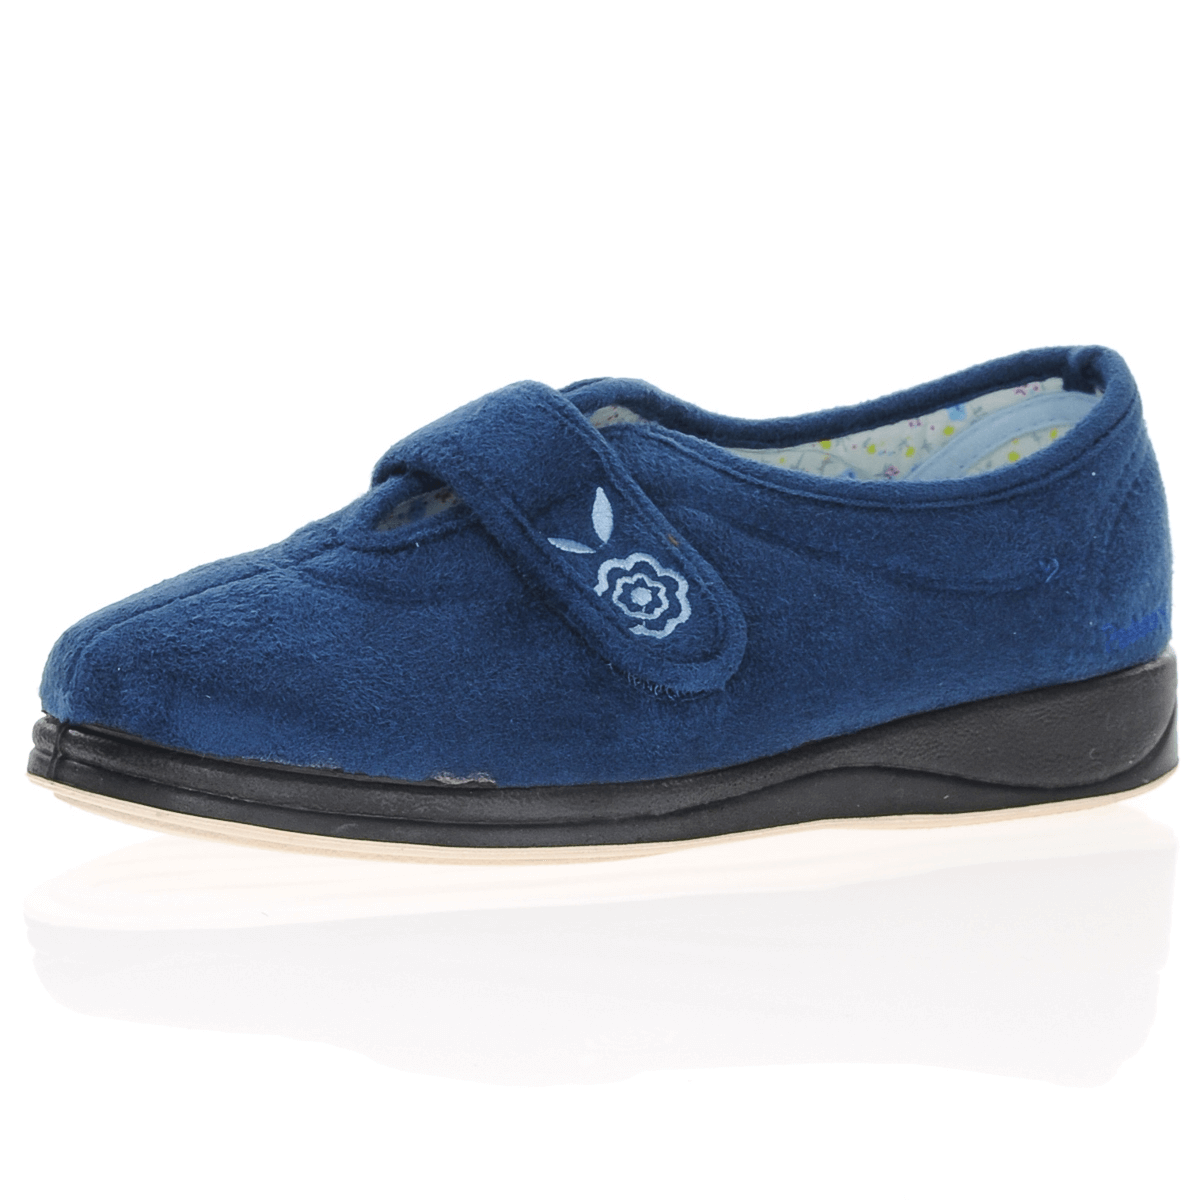 Padders - Camilla Front Strap Slippers, Blue